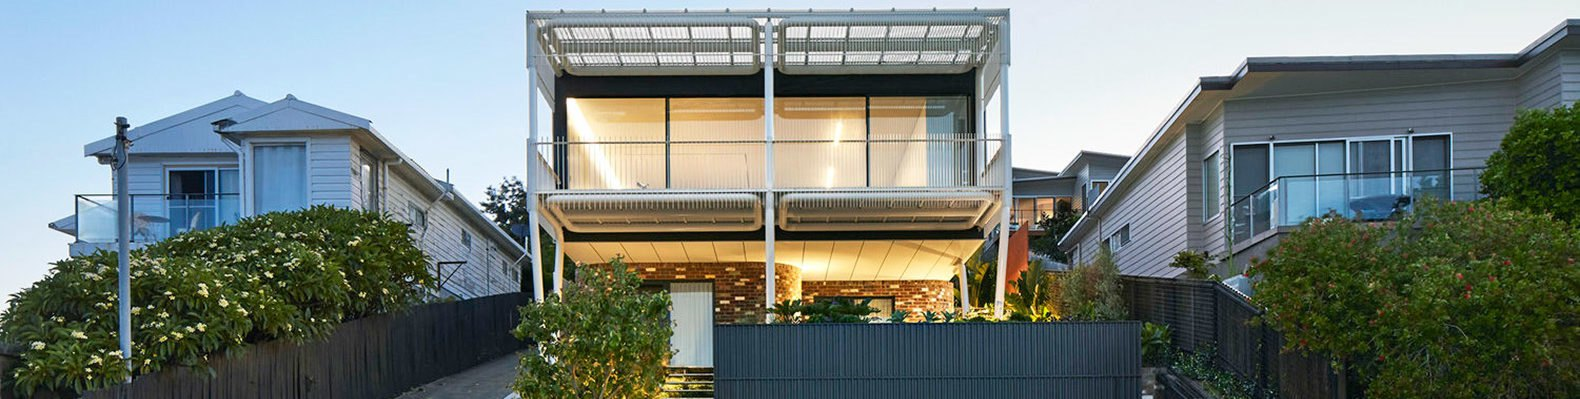 Greenacres, Austin Maynard Architects, house on stilts, Australia, passive cooling, energy-efficient home, cross ventilation, green architecture, panoramic views